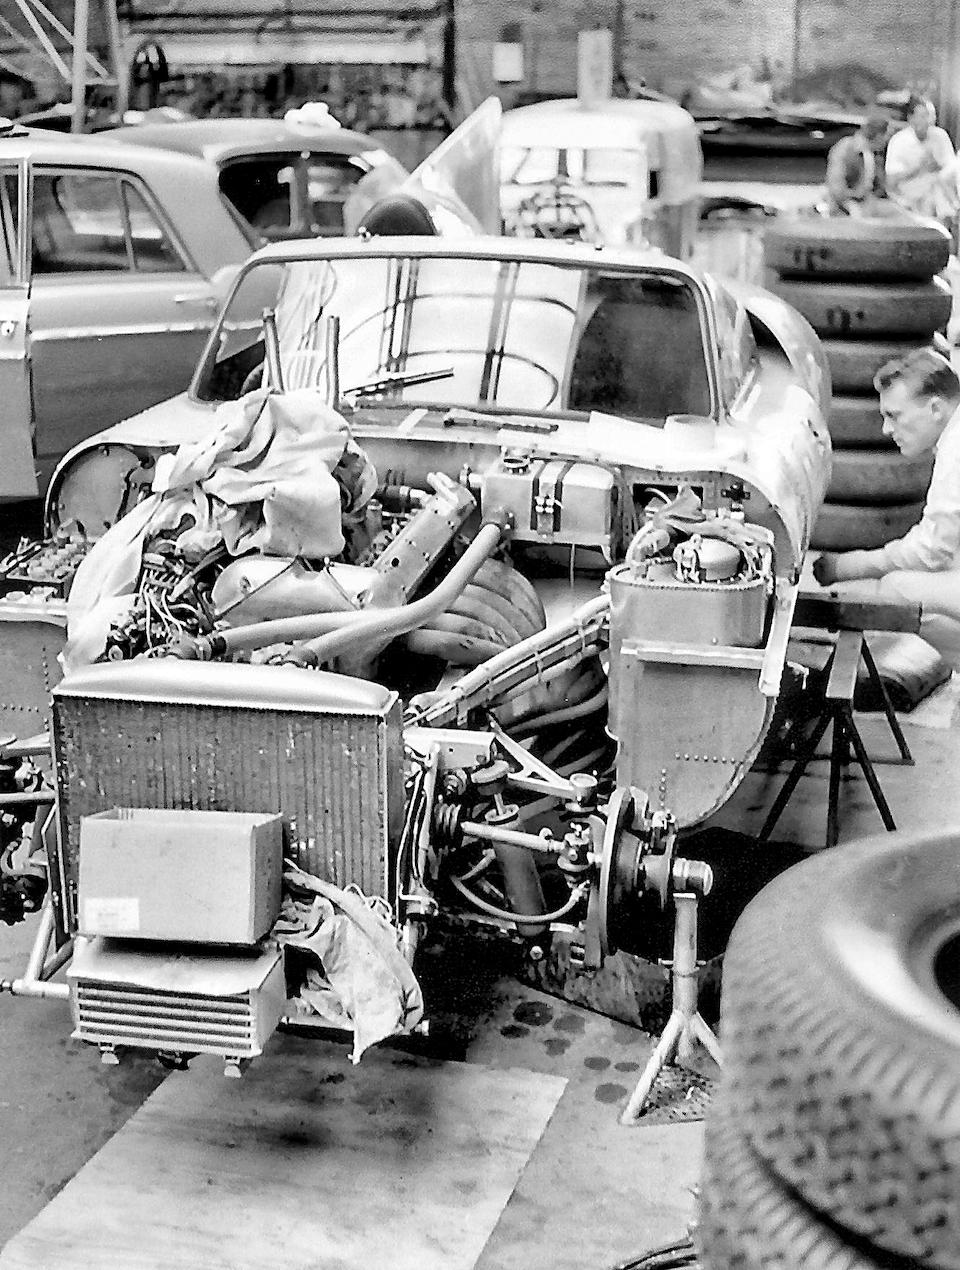 The Ex-Dan Gurney/Walt Hansgen, Sir Jack Brabham, Bruce McLaren,1960 Jaguar E2A Le Mans Sports-Racing Two-Seater Prototype  Chassis no. E2A Engine no. E5028-10, 3.8-liter installed, EE1301-10, 3-liter PI offered with car